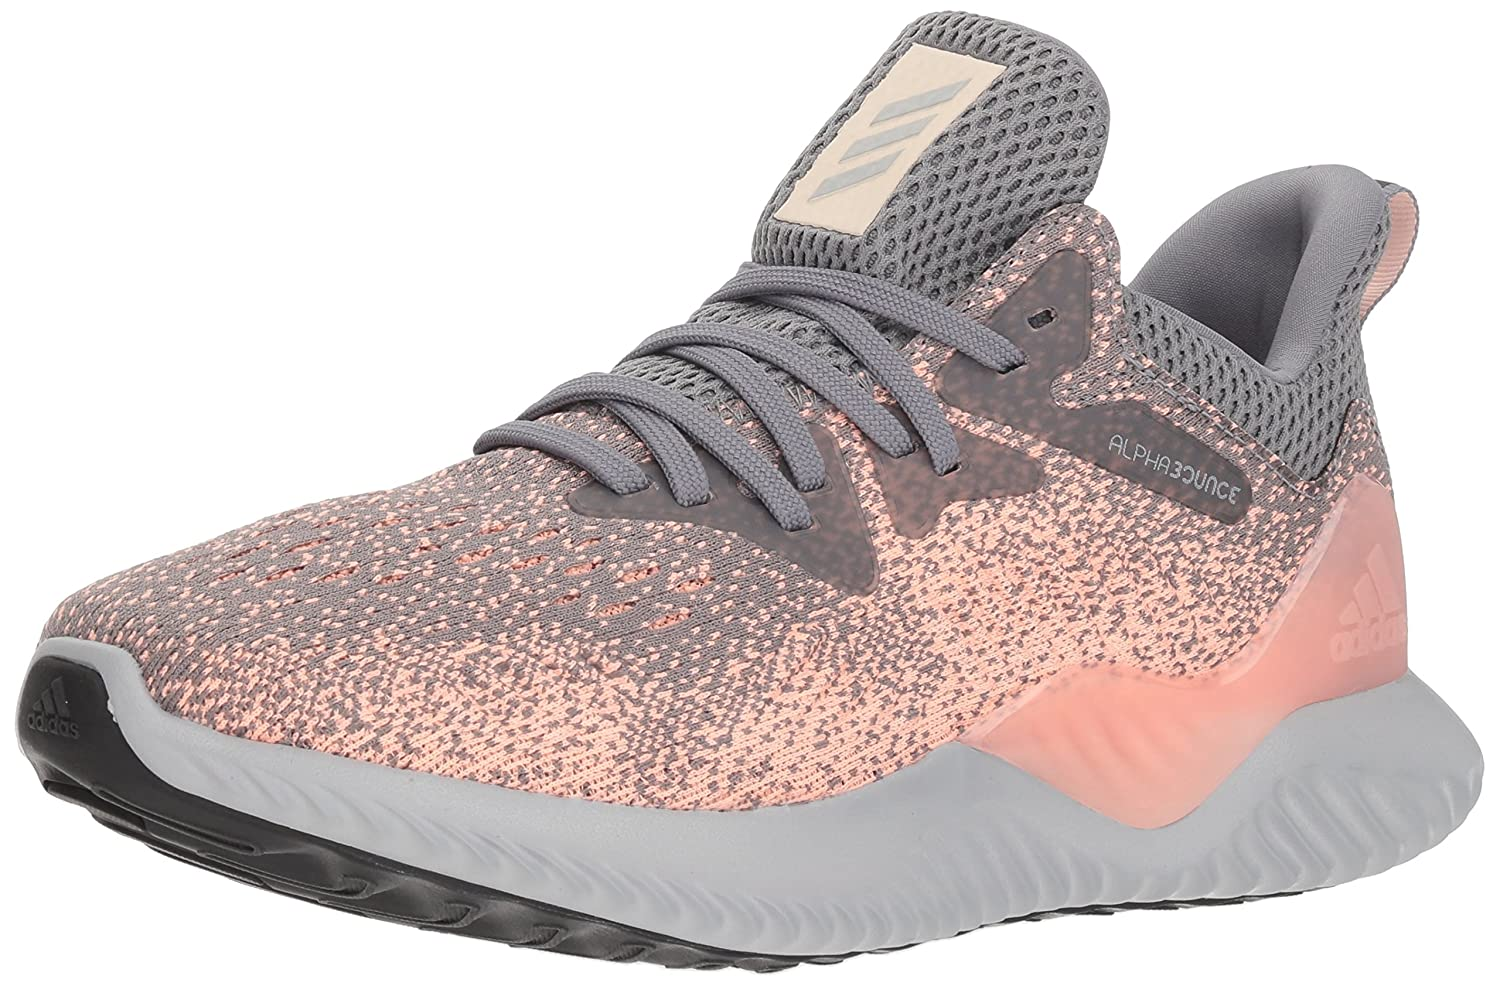 adidas Women's Alphabounce Beyond Running Shoe B077XJ59CV 10 B(M) US|Grey/Grey/Clear Orange